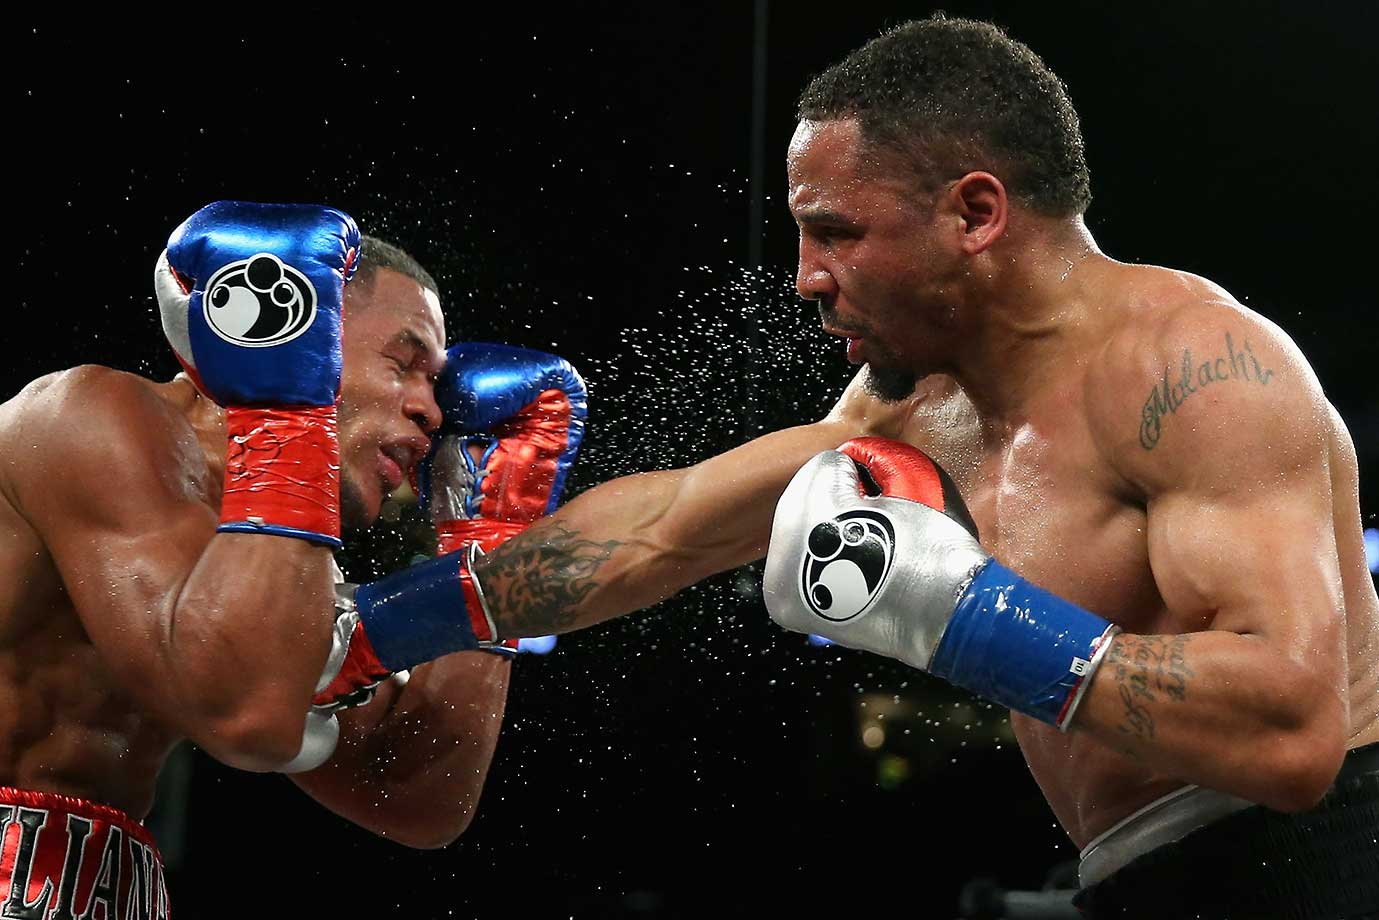 Andre Ward (right) won his light heavyweight bout against Sullivan Barrera with a unanimous decision.